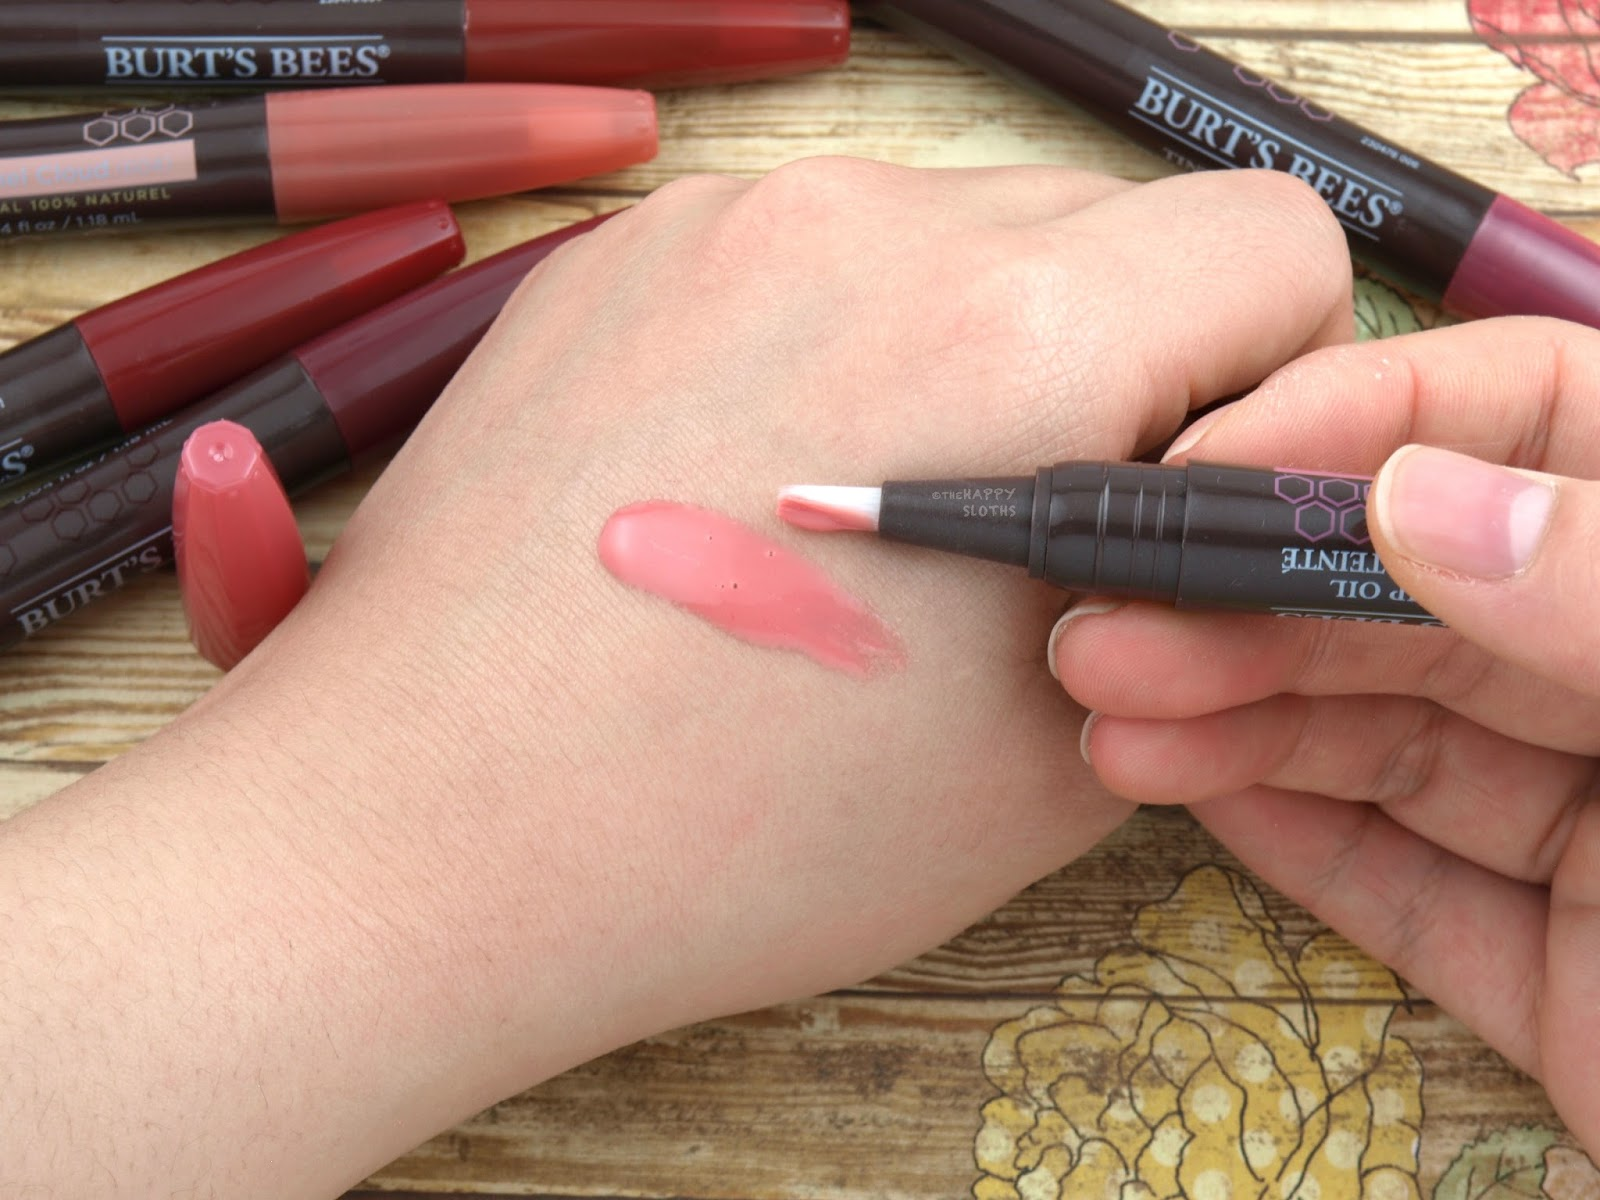 Burt's Bees Tinted Lip Oil: Review and Swatches